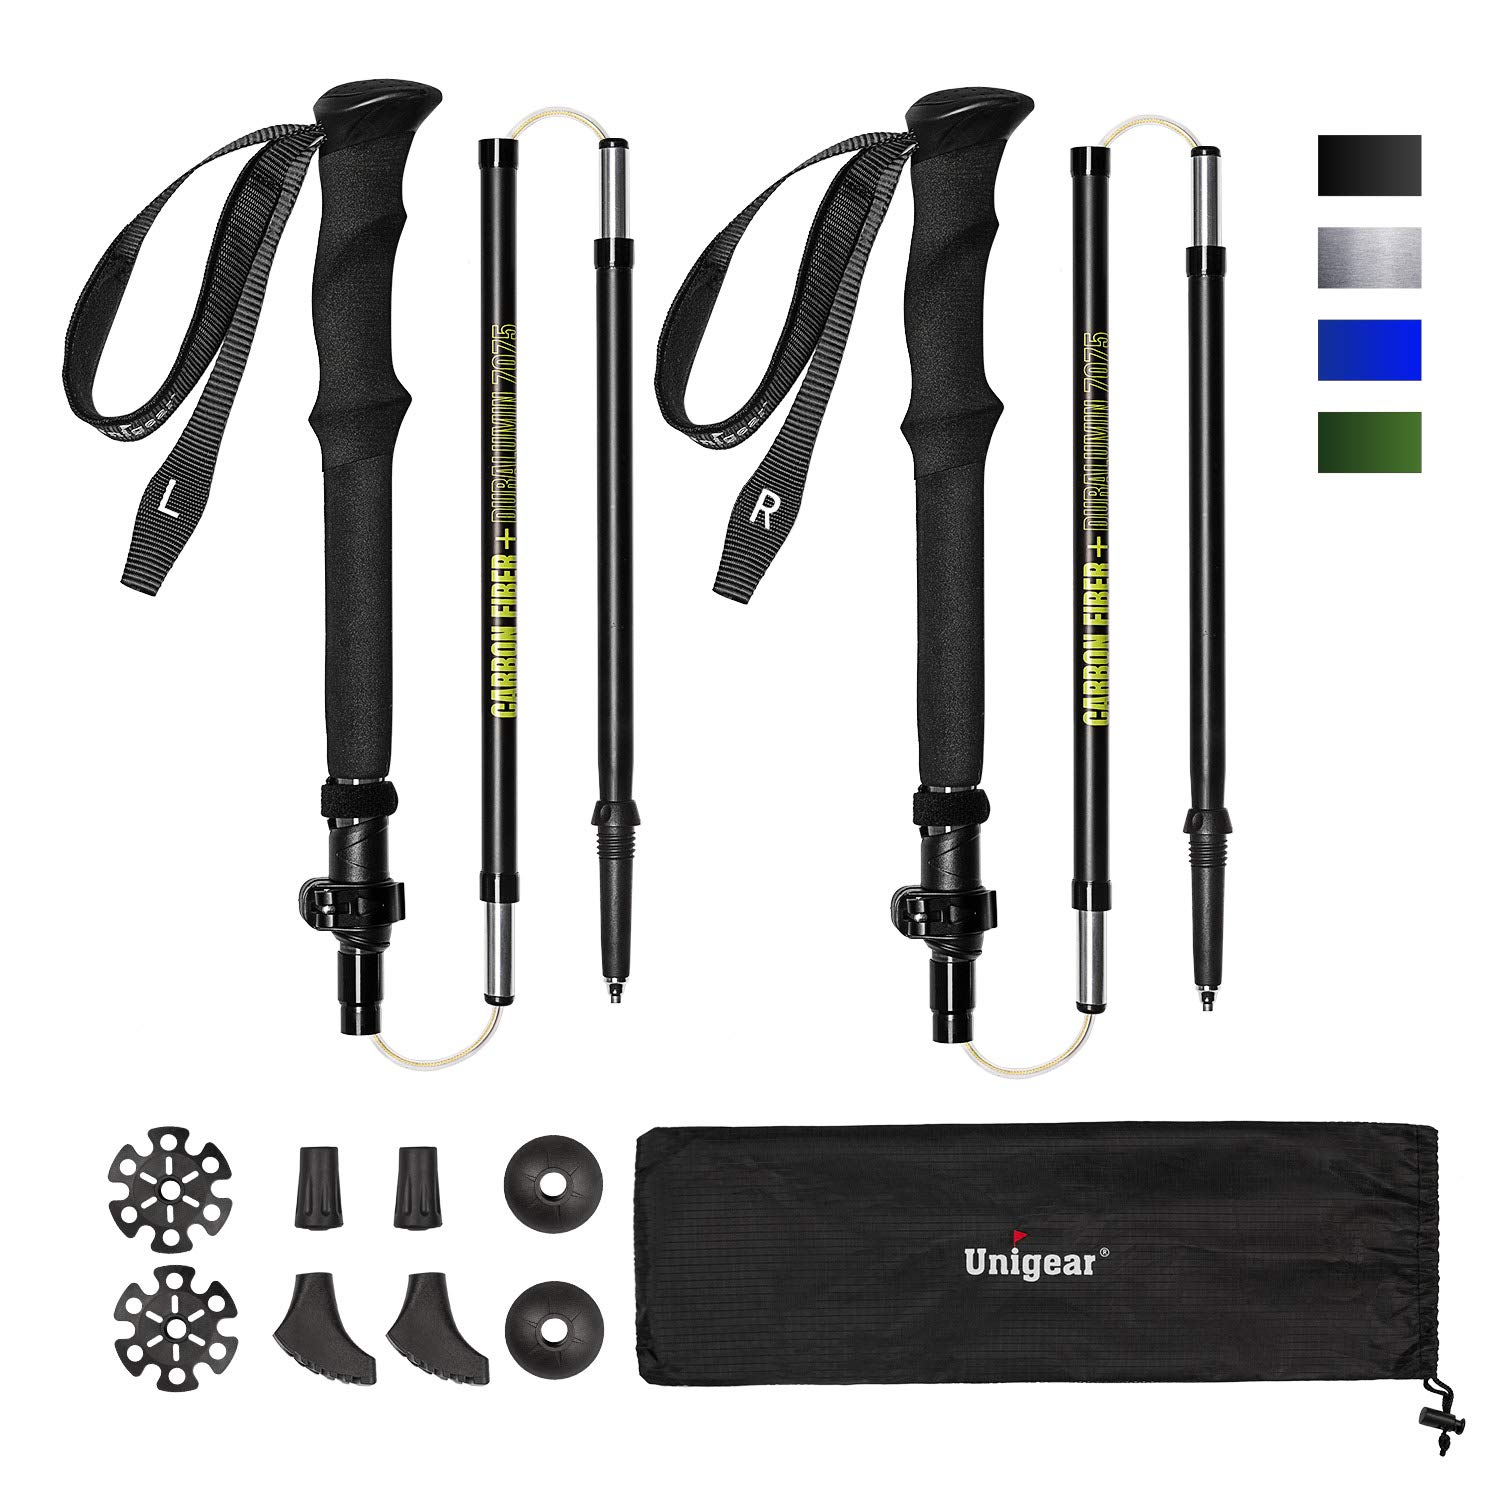 Unigear Trekking Poles, Collapsible and Adjustable Hiking Walking Sticks with Quick Lock System, Super Strong and Ultralight Carbon Fiber and Aluminum 7075 for Camping, Backpacking, Climbing